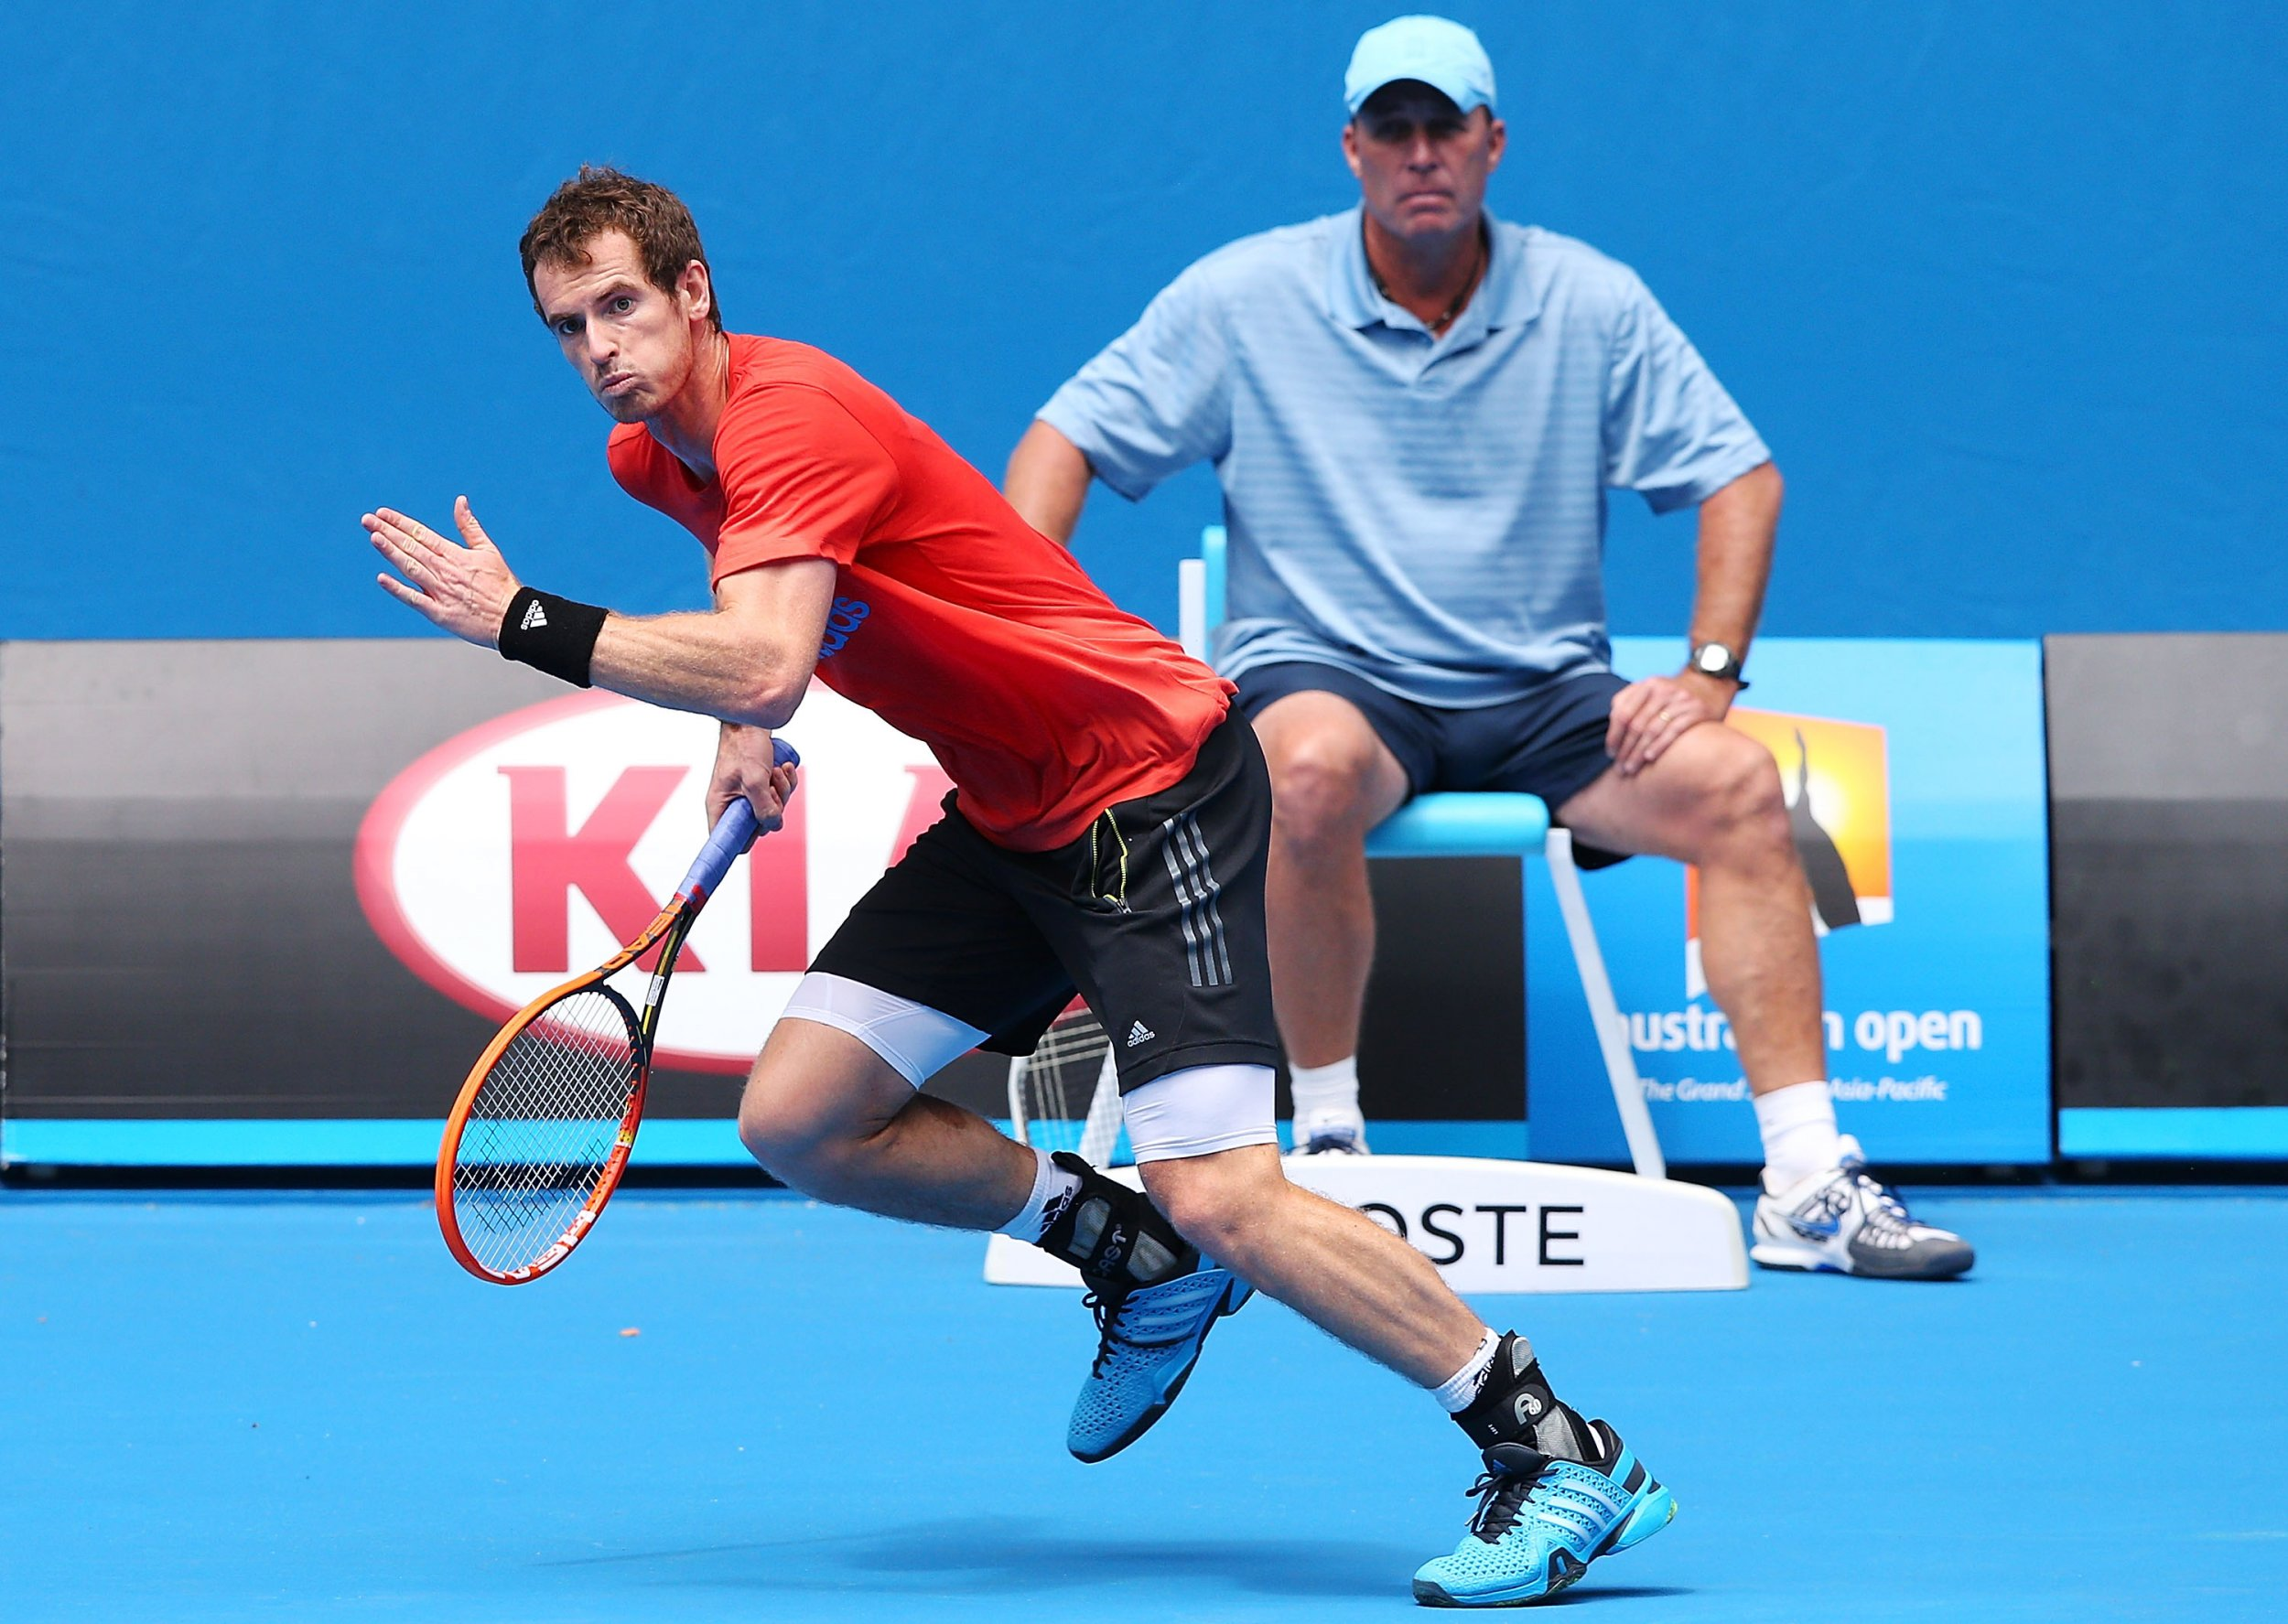 Could Andy Murray Reunite With His Former Coach Ivan Lendl